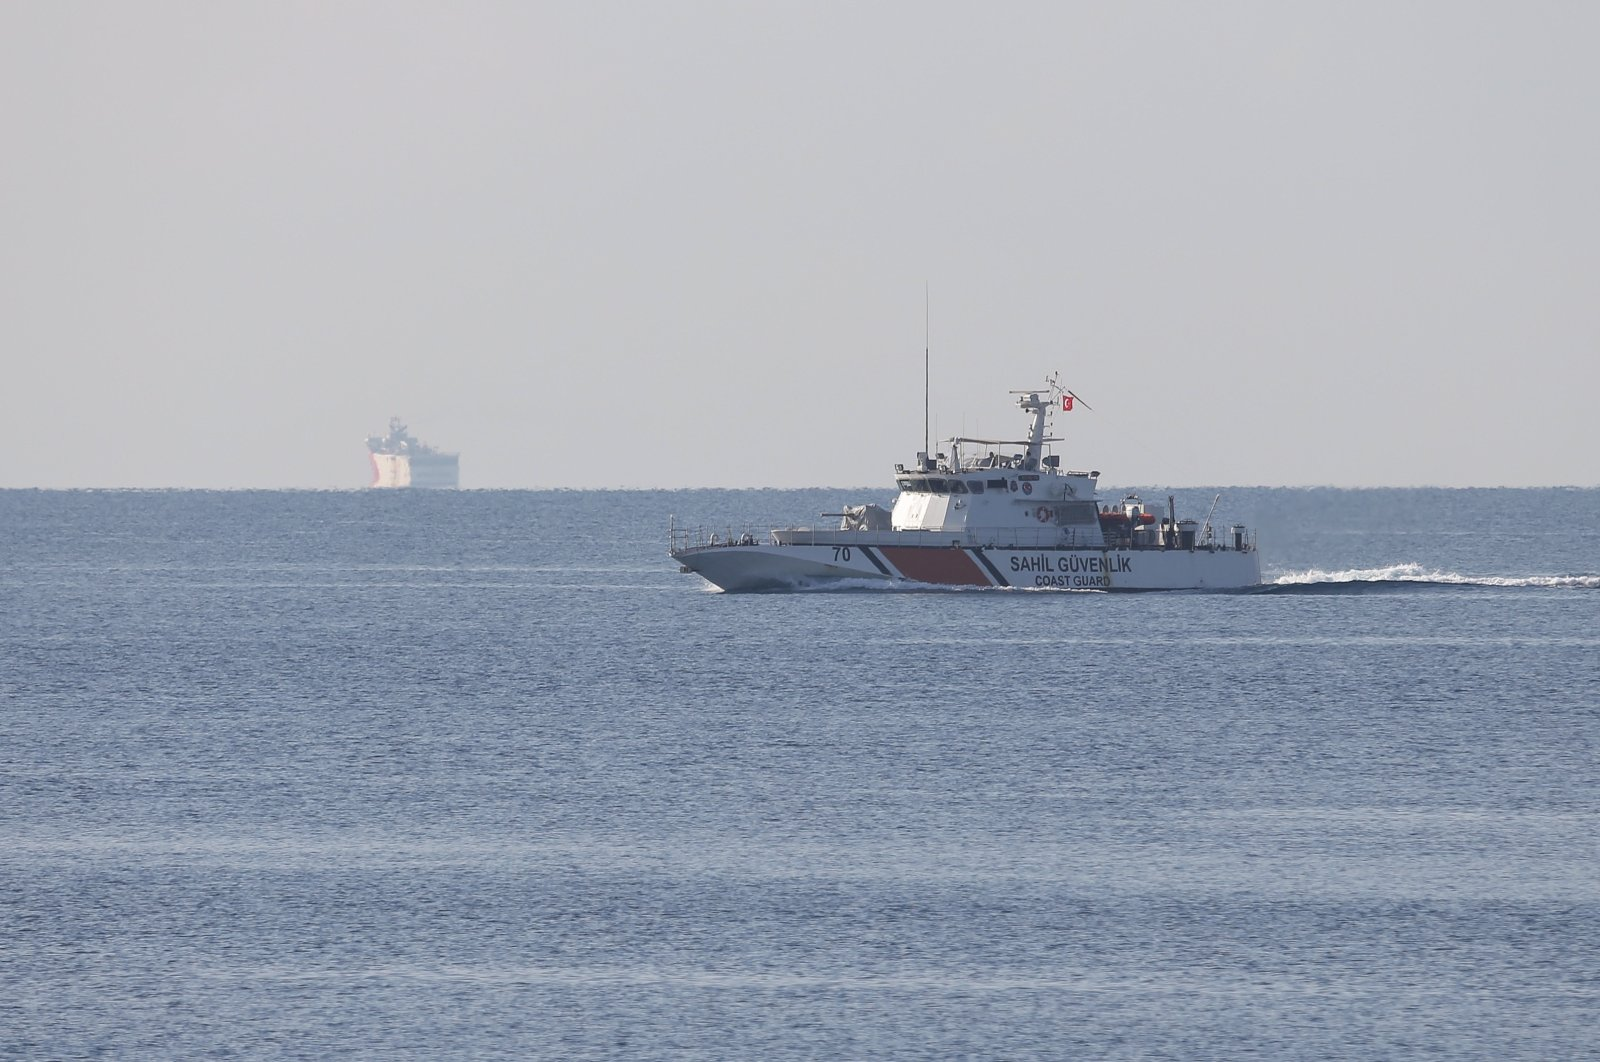 A new Navtex was announced for the Oruç Reis, extending its activities until Nov. 14, photo taken on Oct. 12, 2020. (AA Photo)